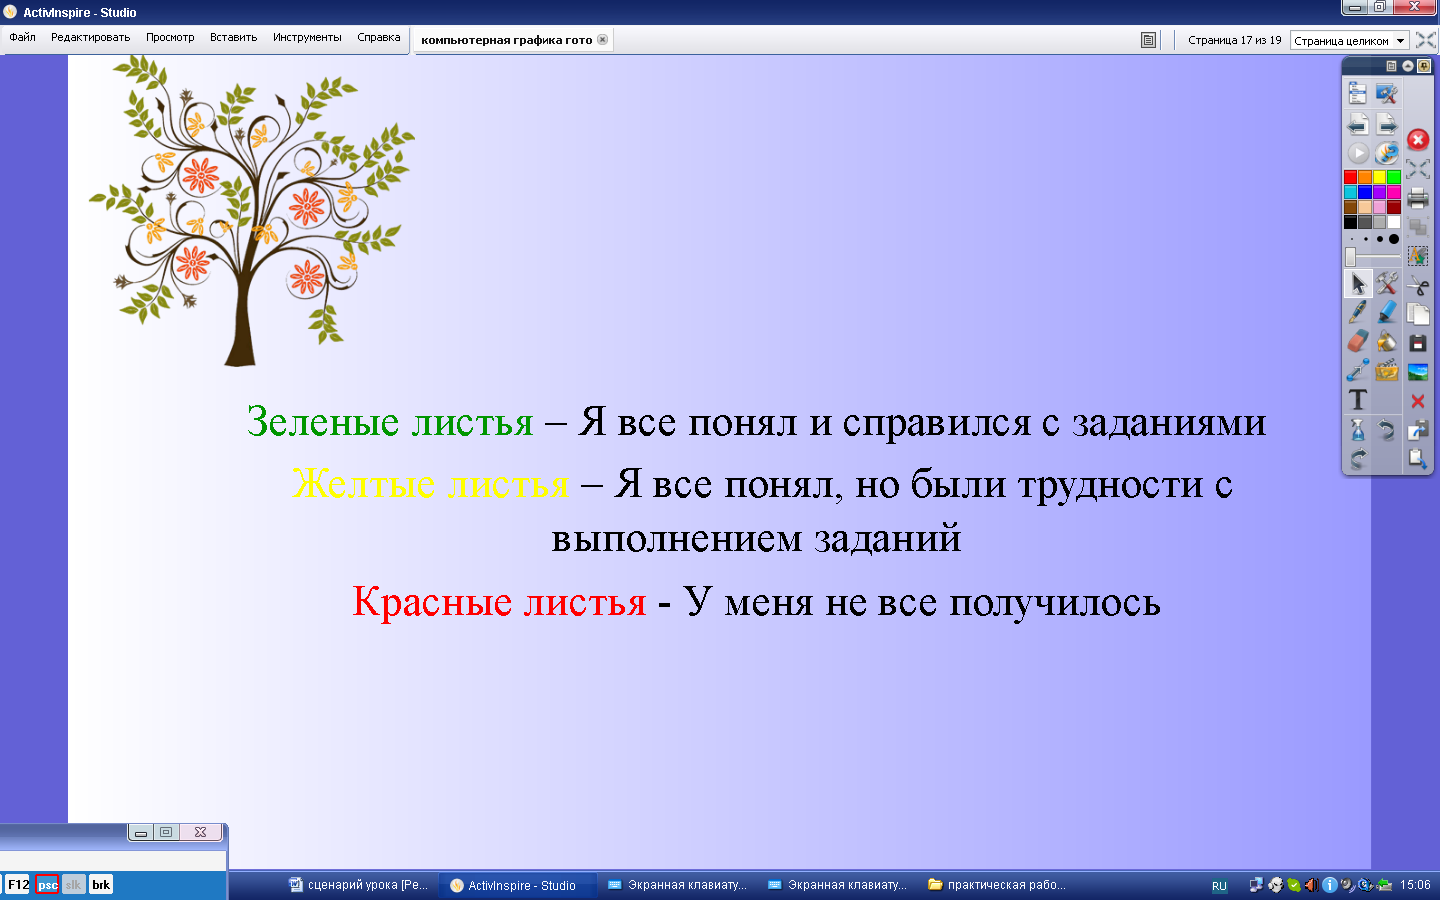 hello_html_m21521330.png